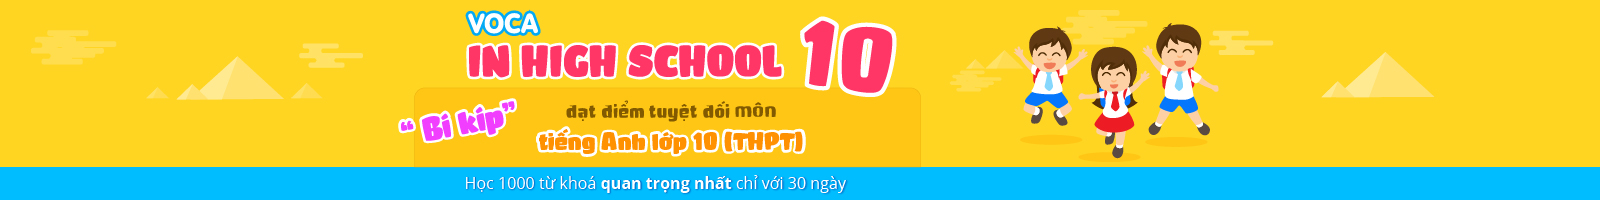 TIẾNG ANH LỚP 10